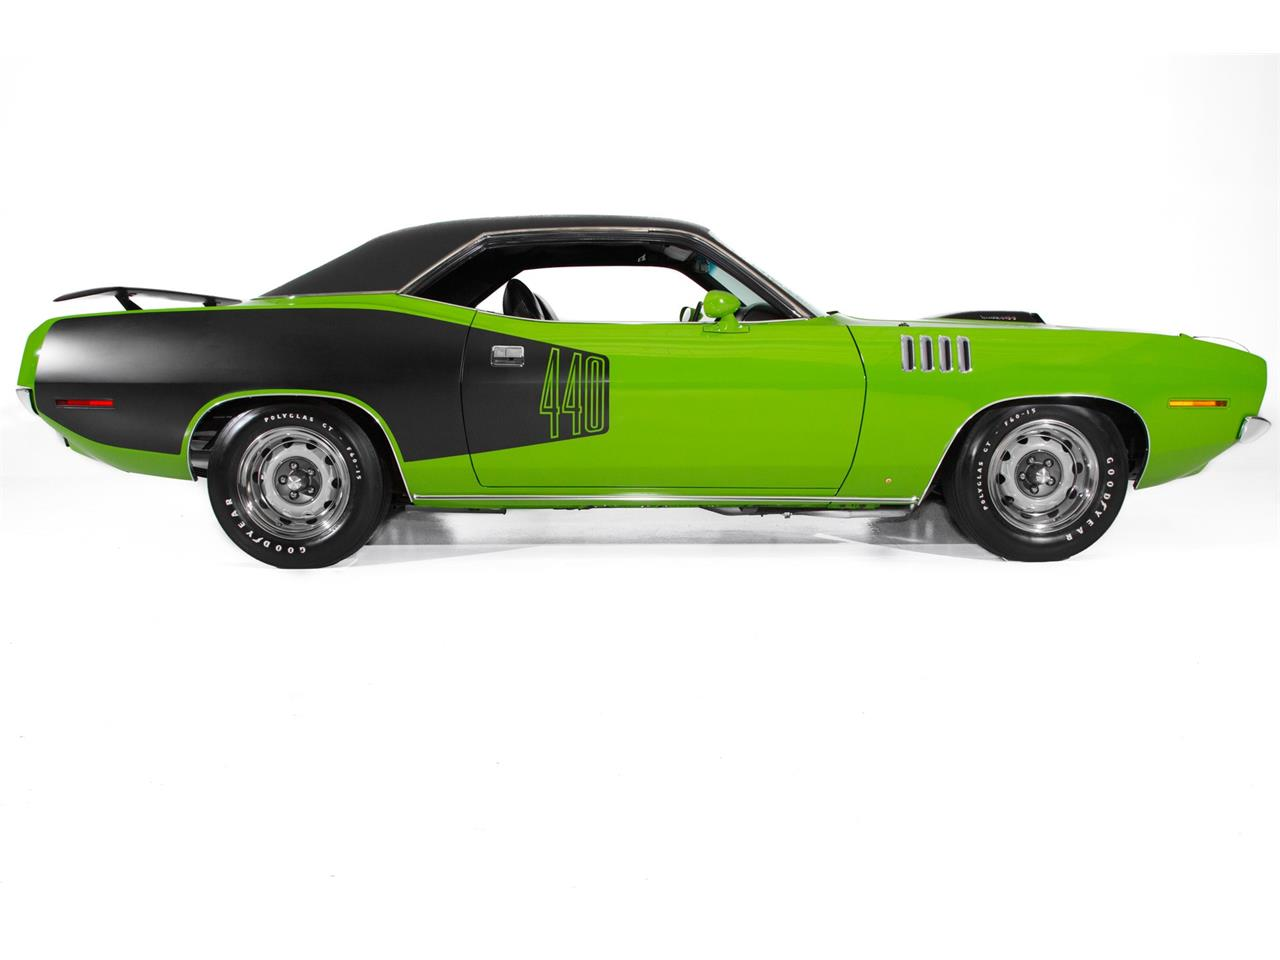 For Sale: 1971 Plymouth Cuda in Des Moines, Iowa